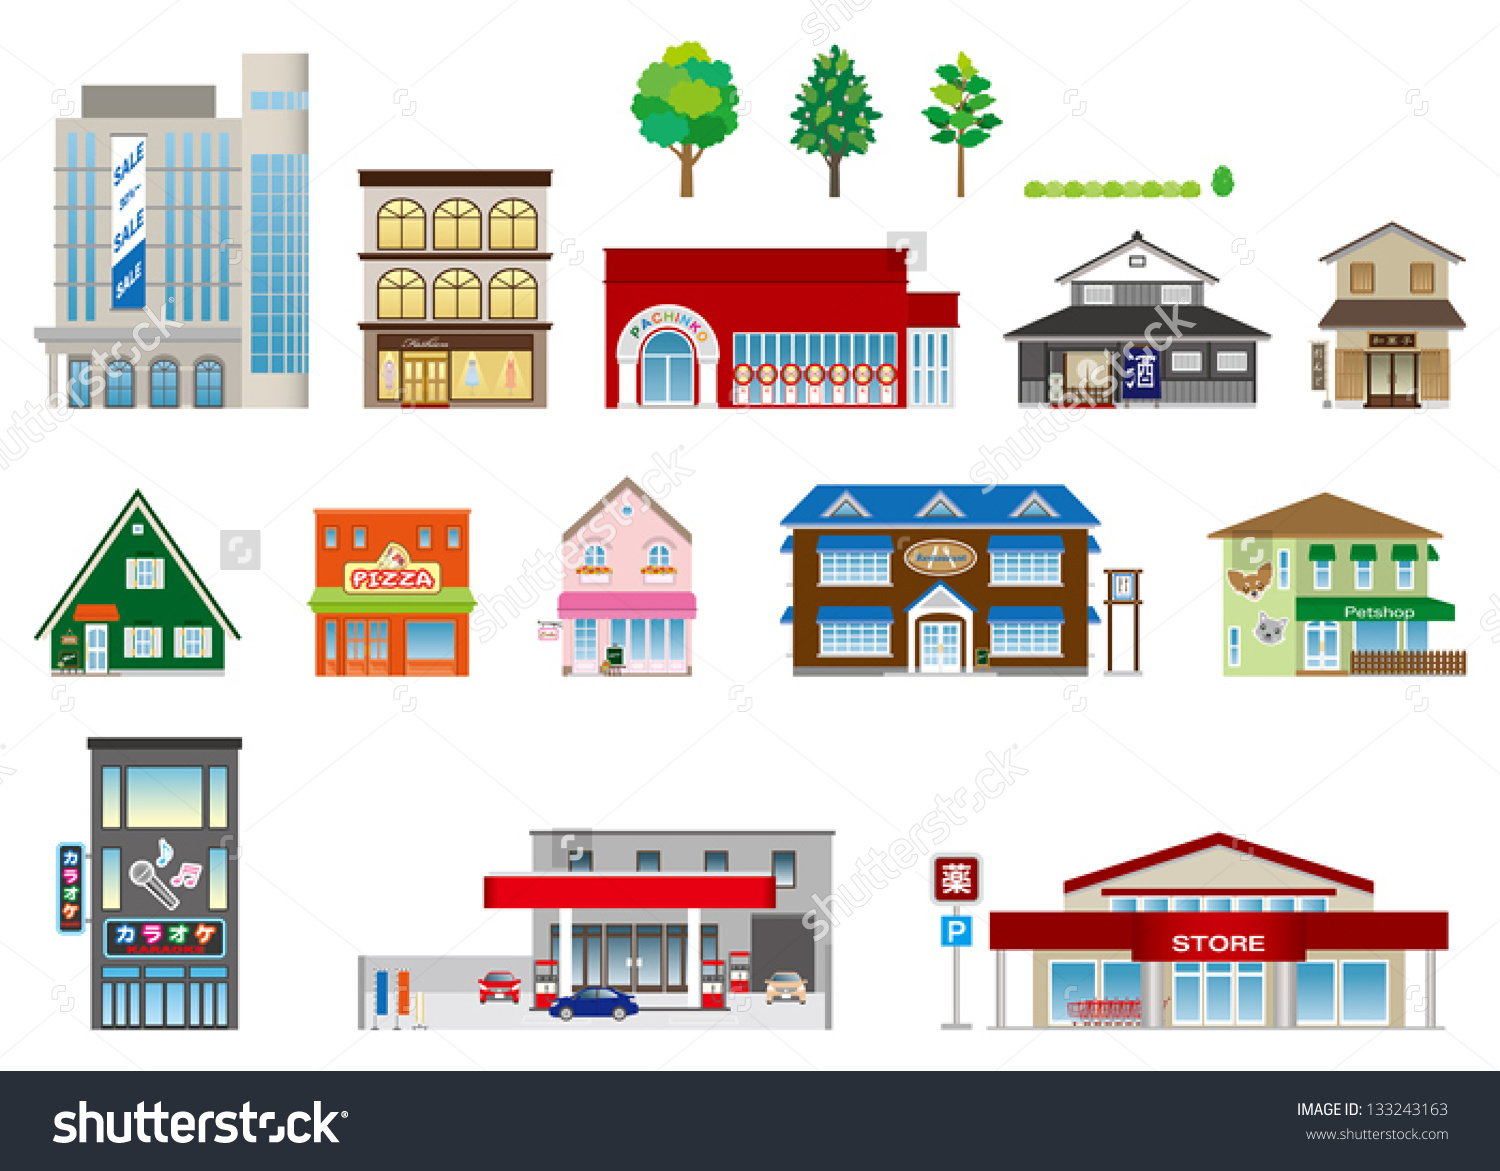 Department Stores Clipart